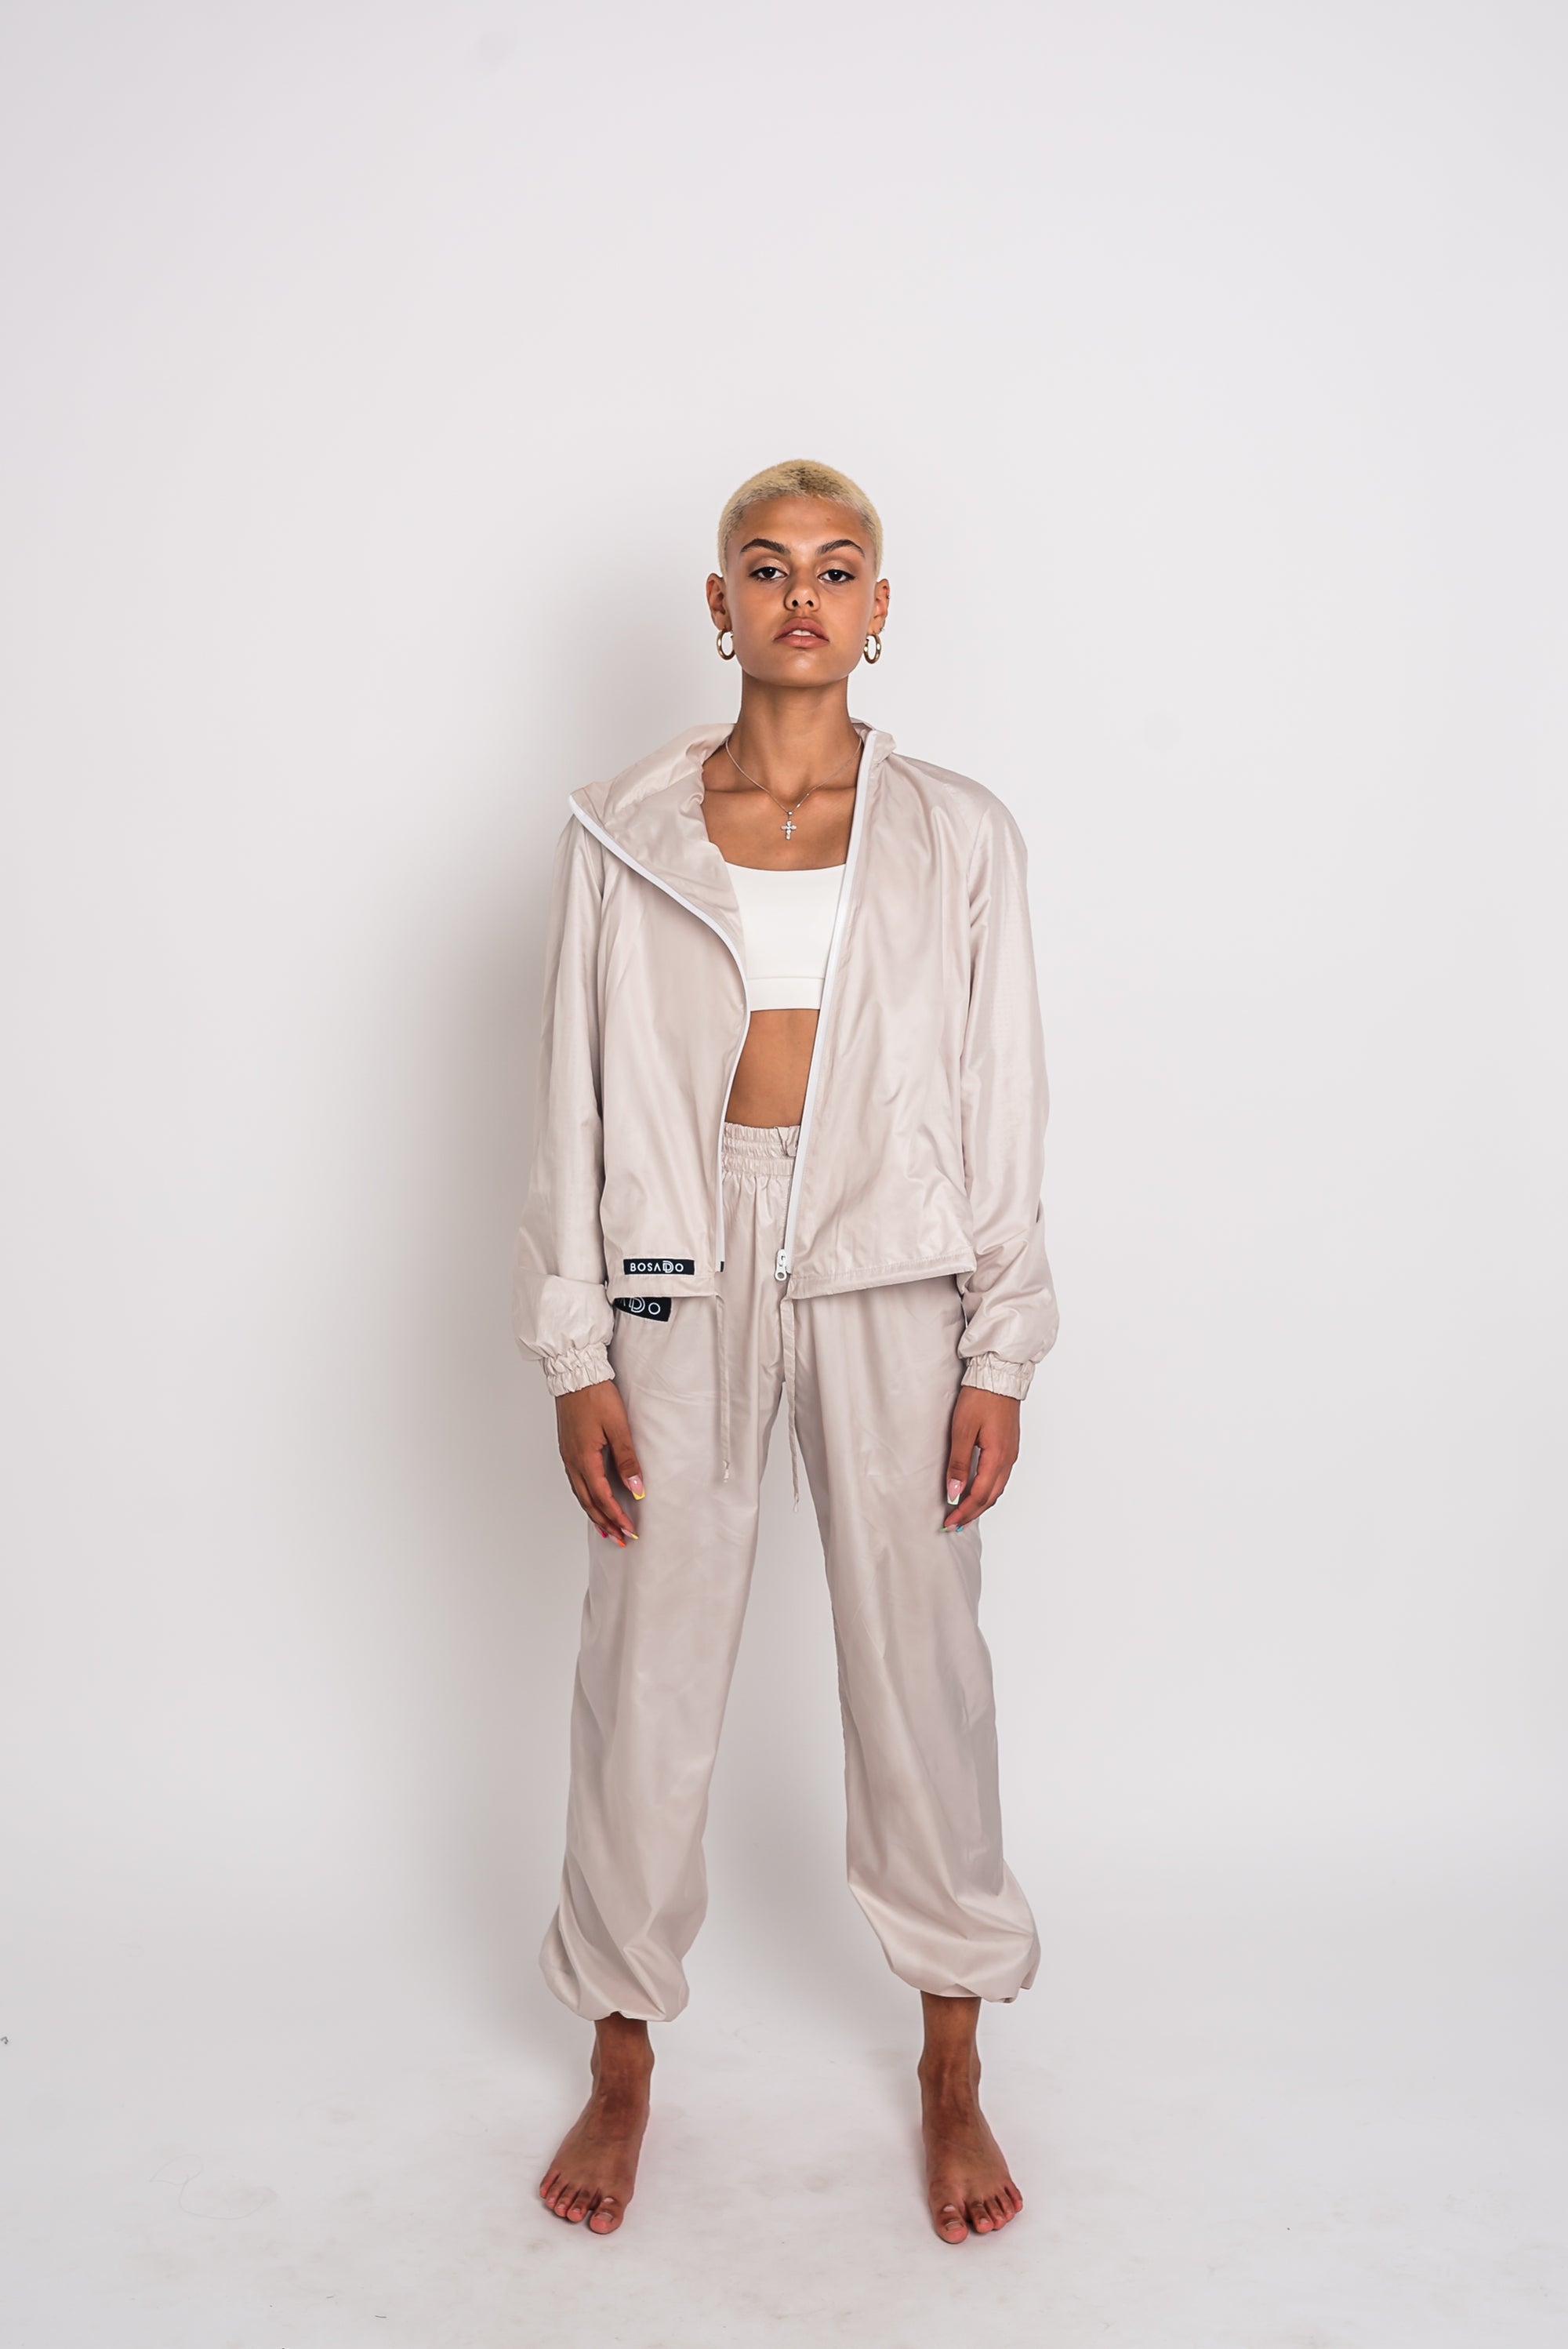 URBAN SWAN COLLECTION | Milk color sports suit with pants + shorts